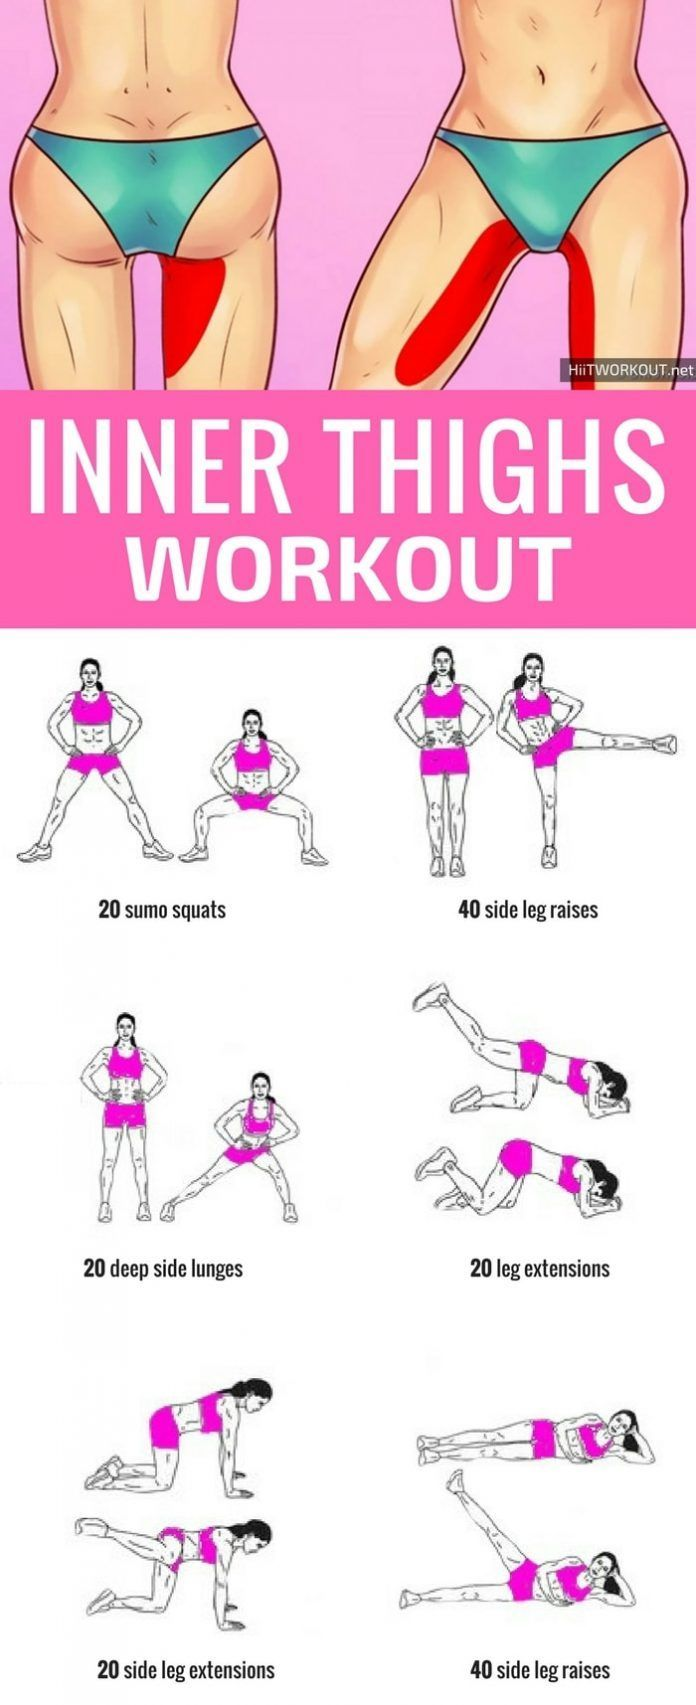 This is a great inner thigh workout at home, you do not need any equipment, just 10 minutes a day....